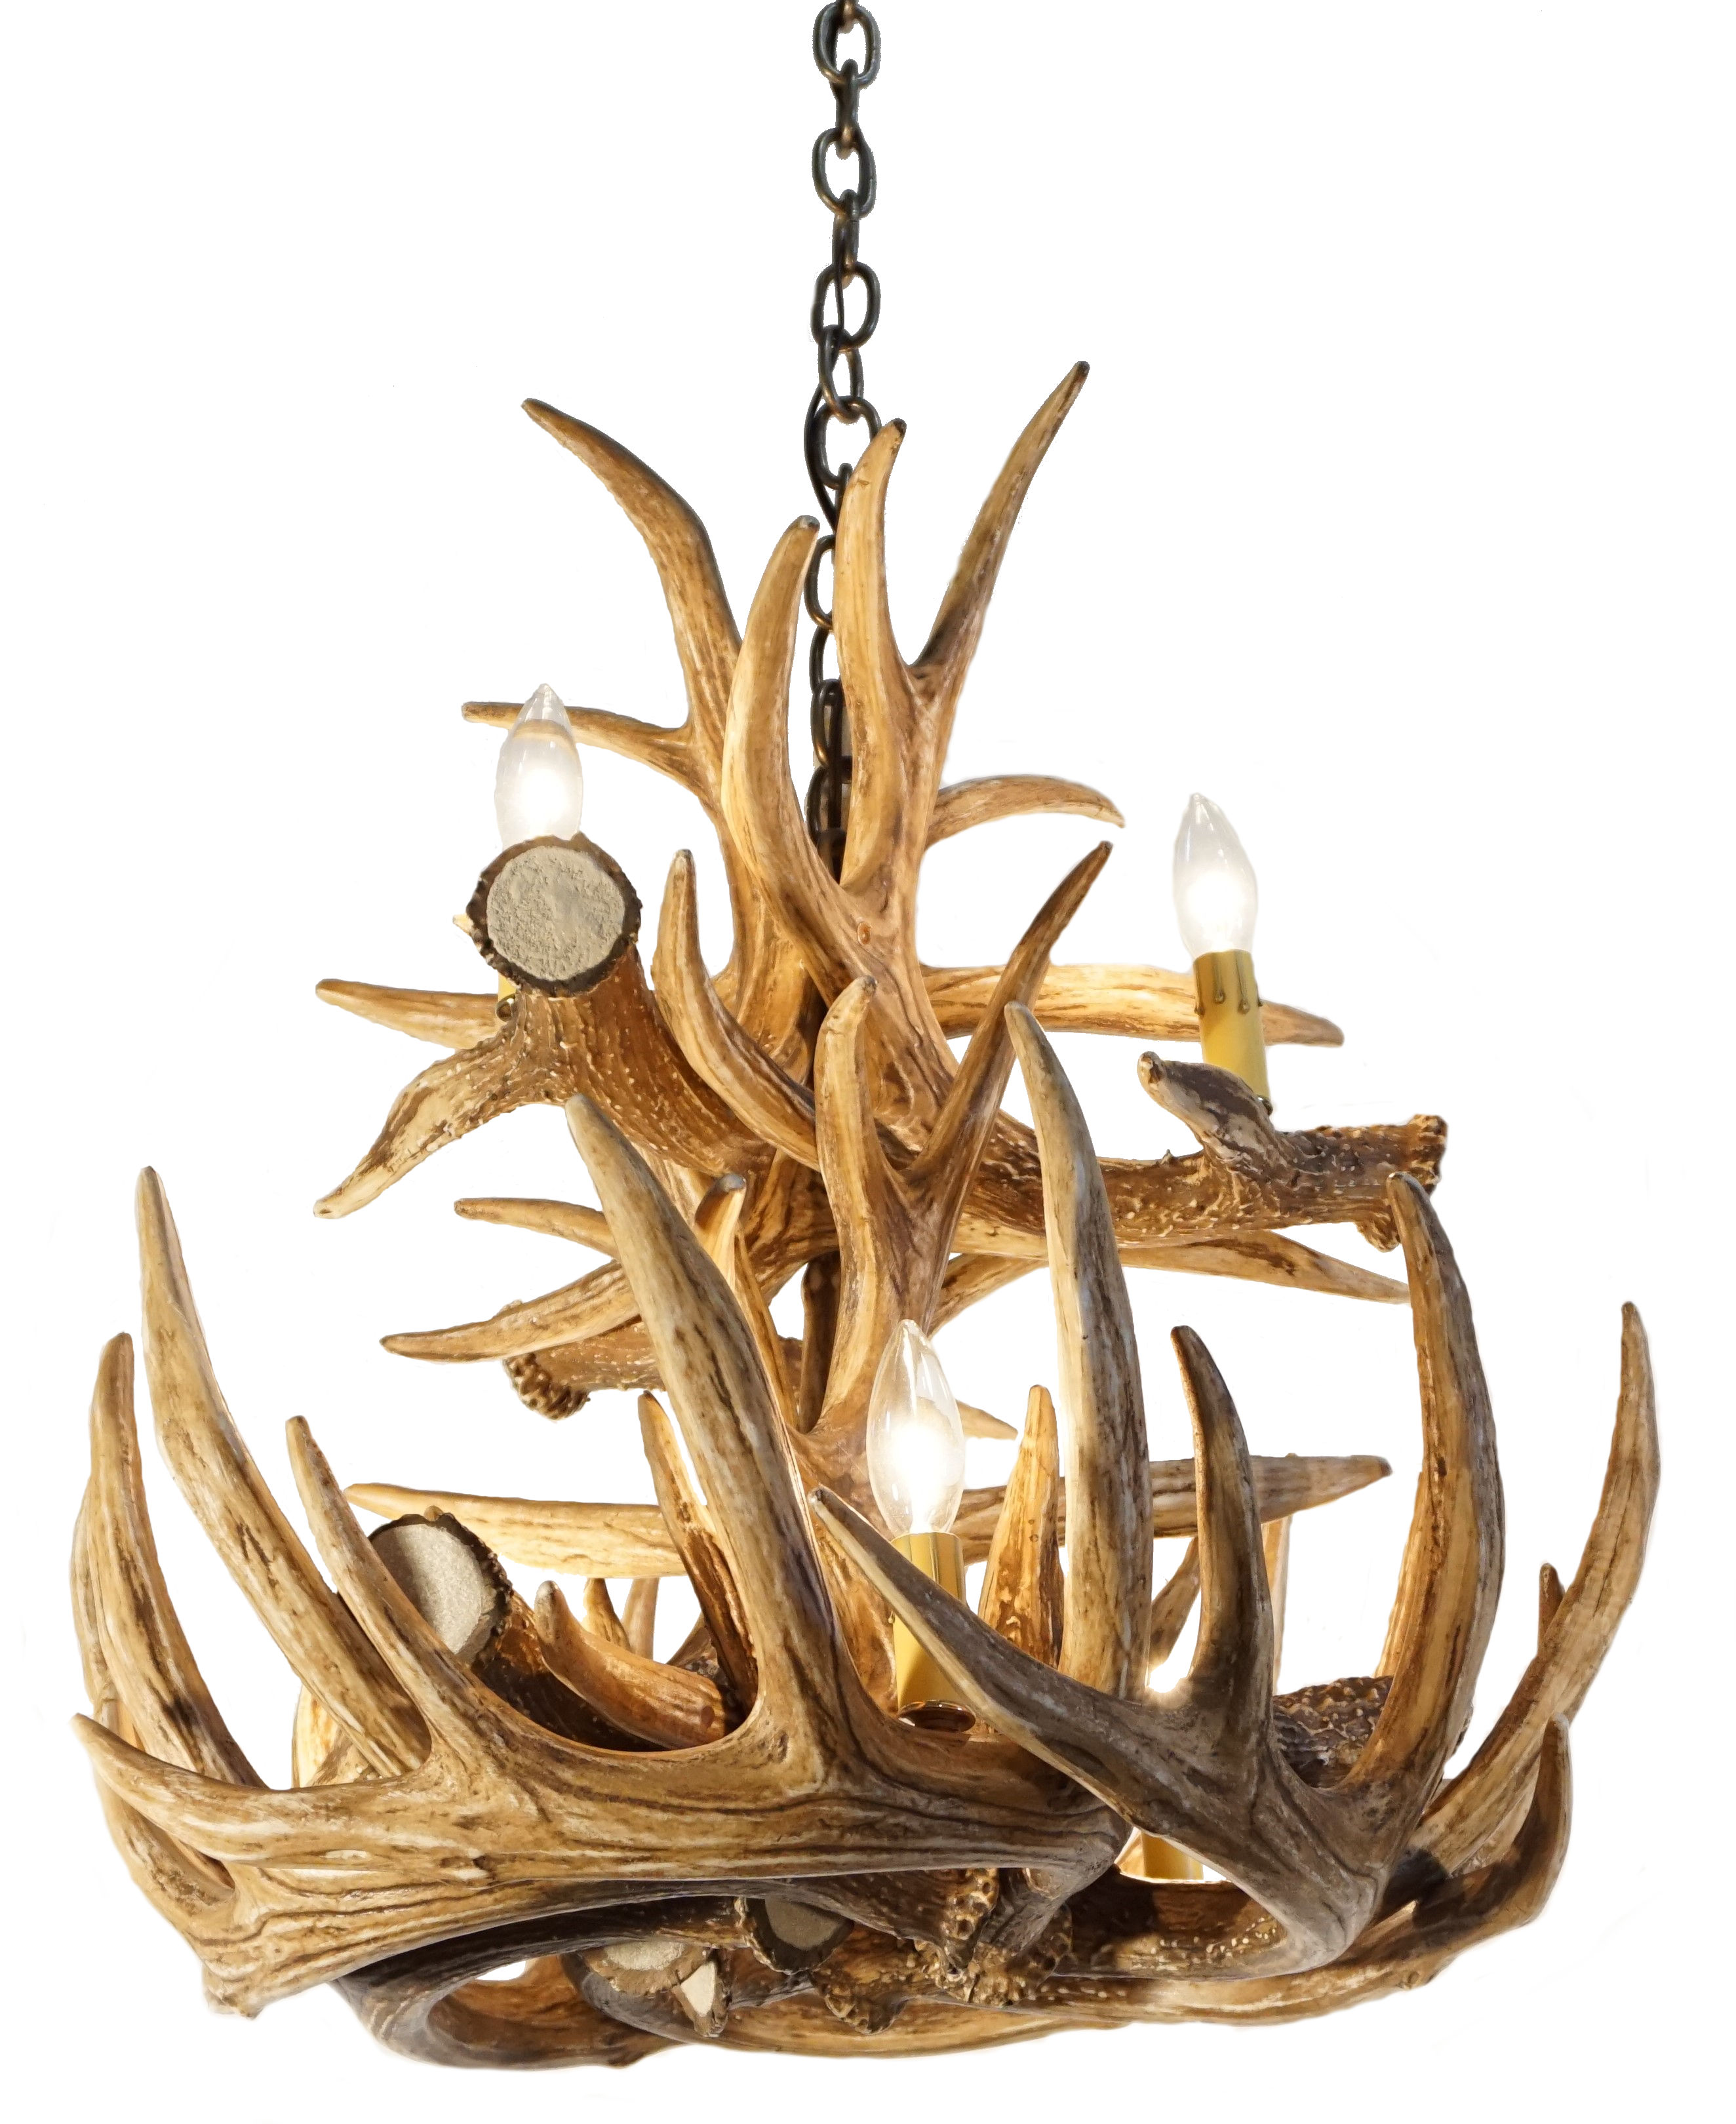 Deer antler ceiling fans best one for your home warisan lighting aloadofball Gallery